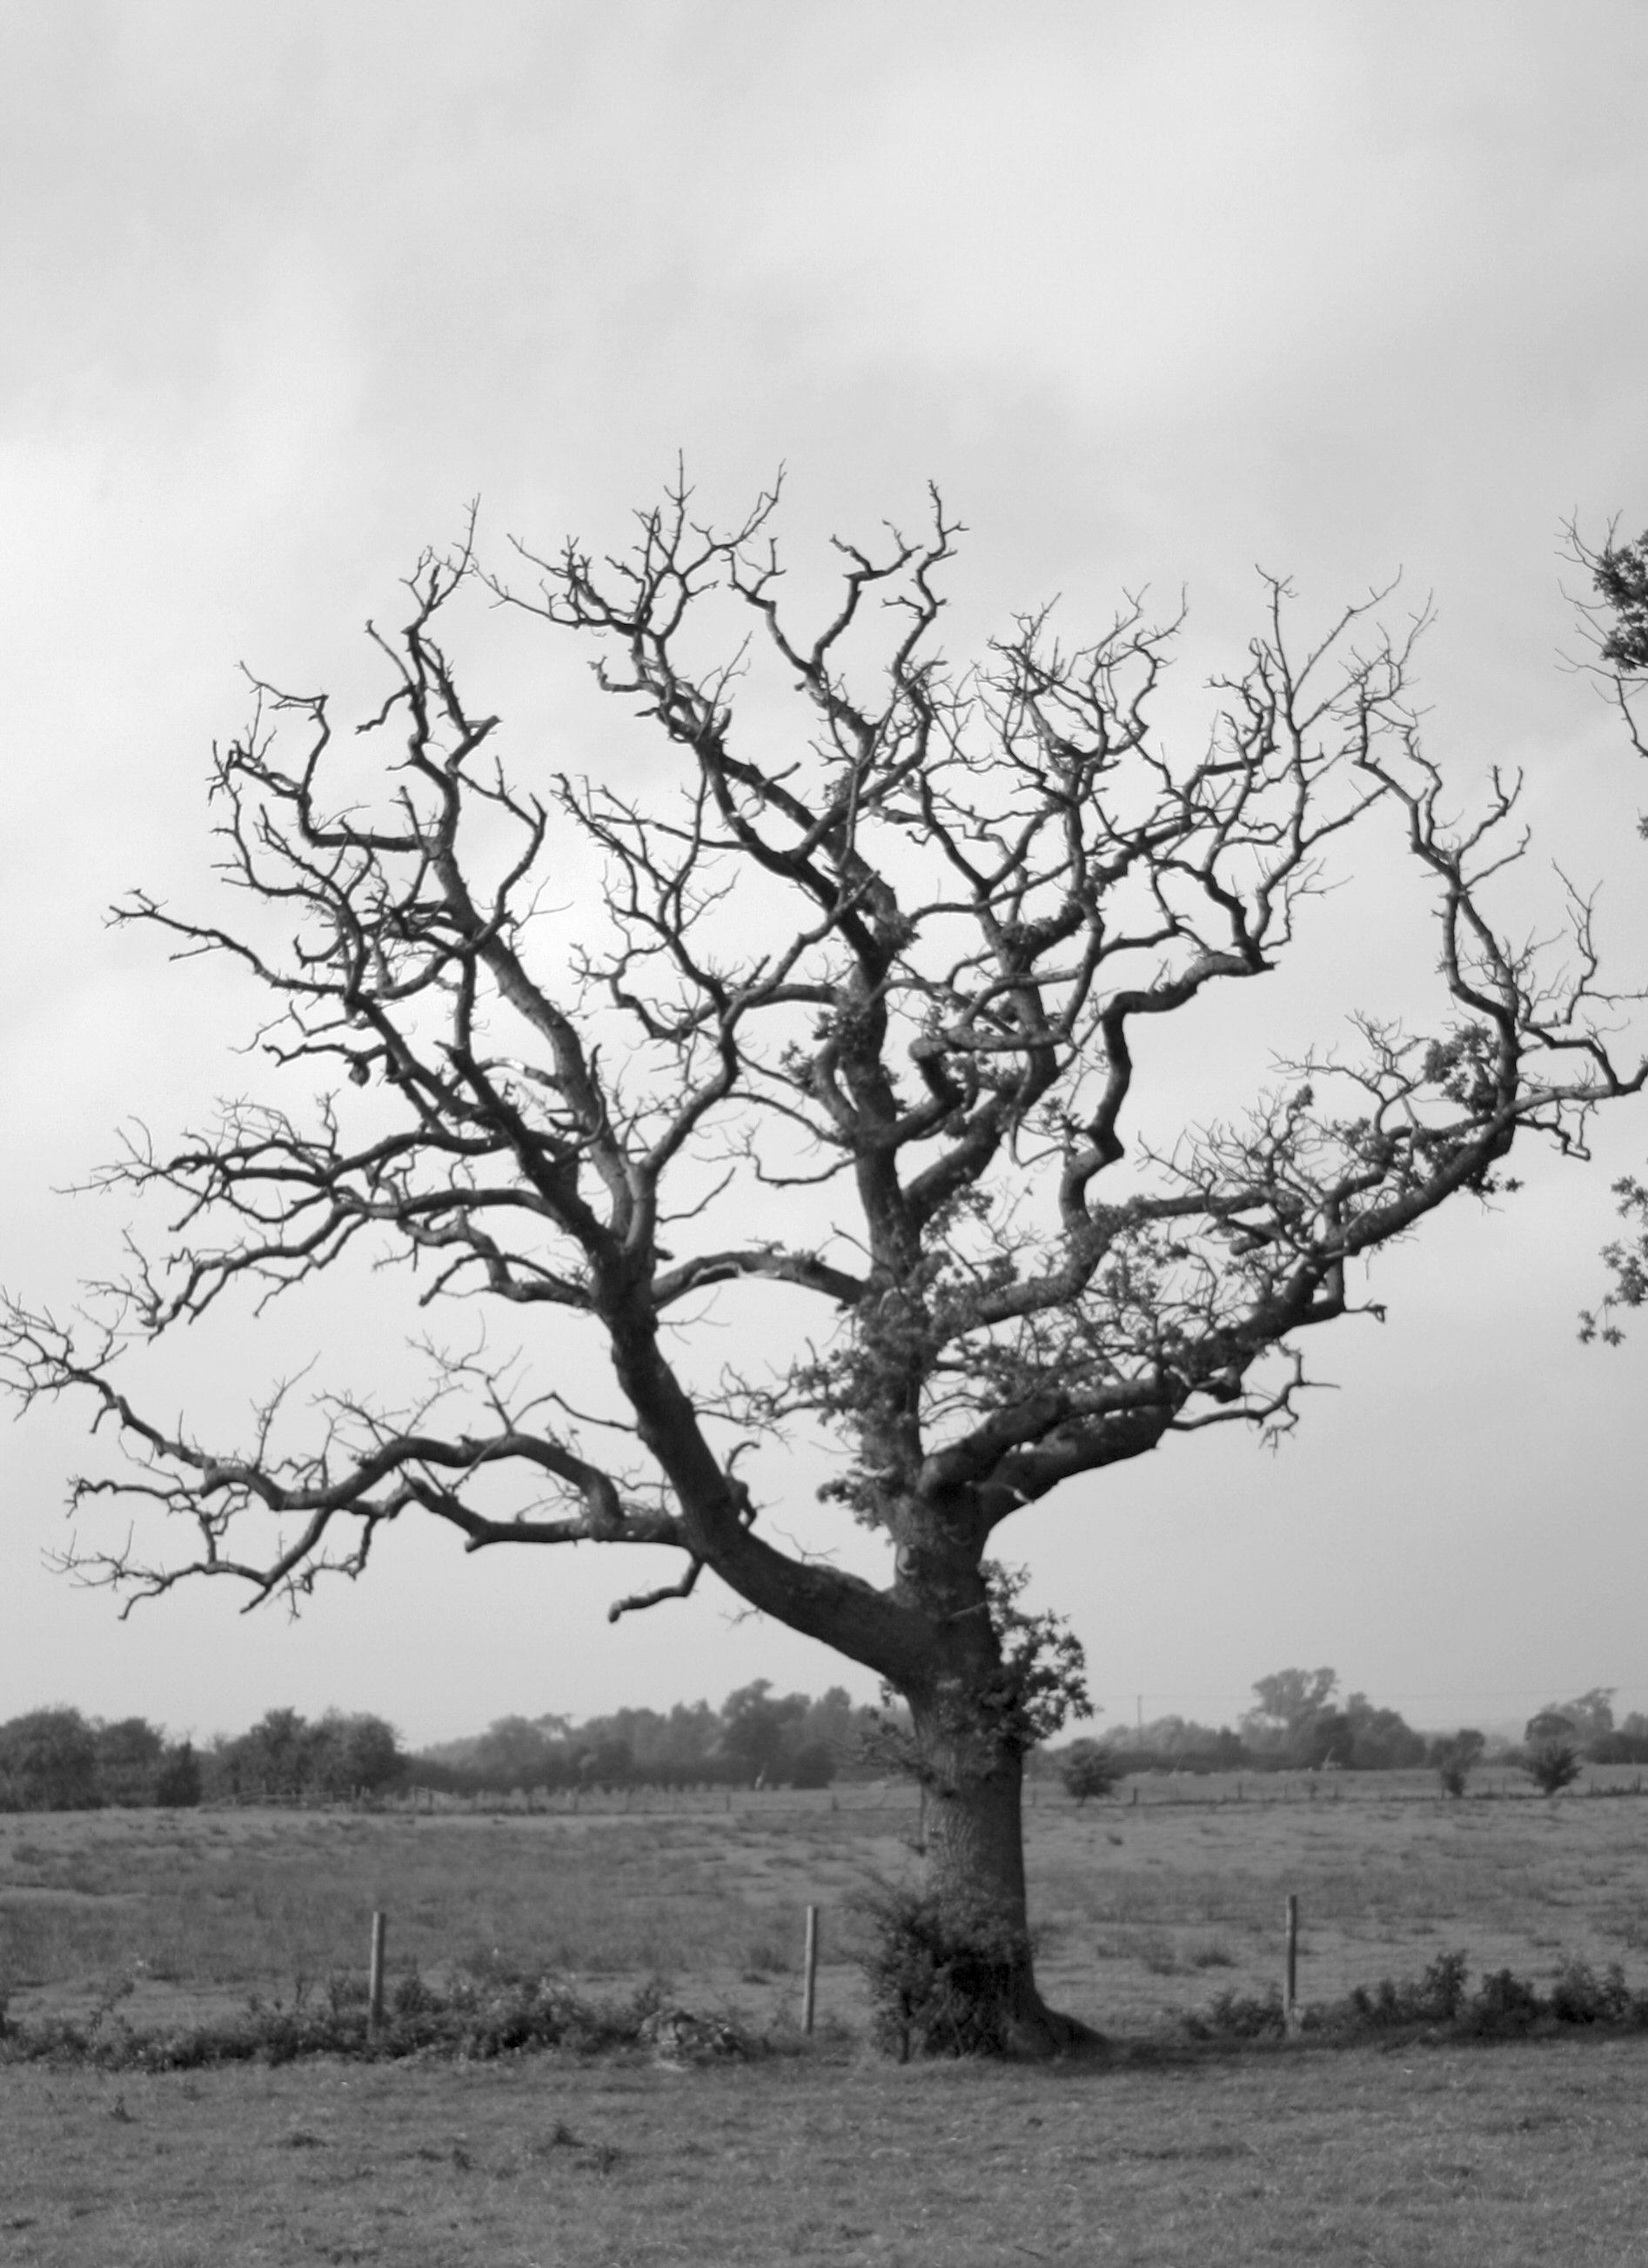 File:DeadTree.jpg